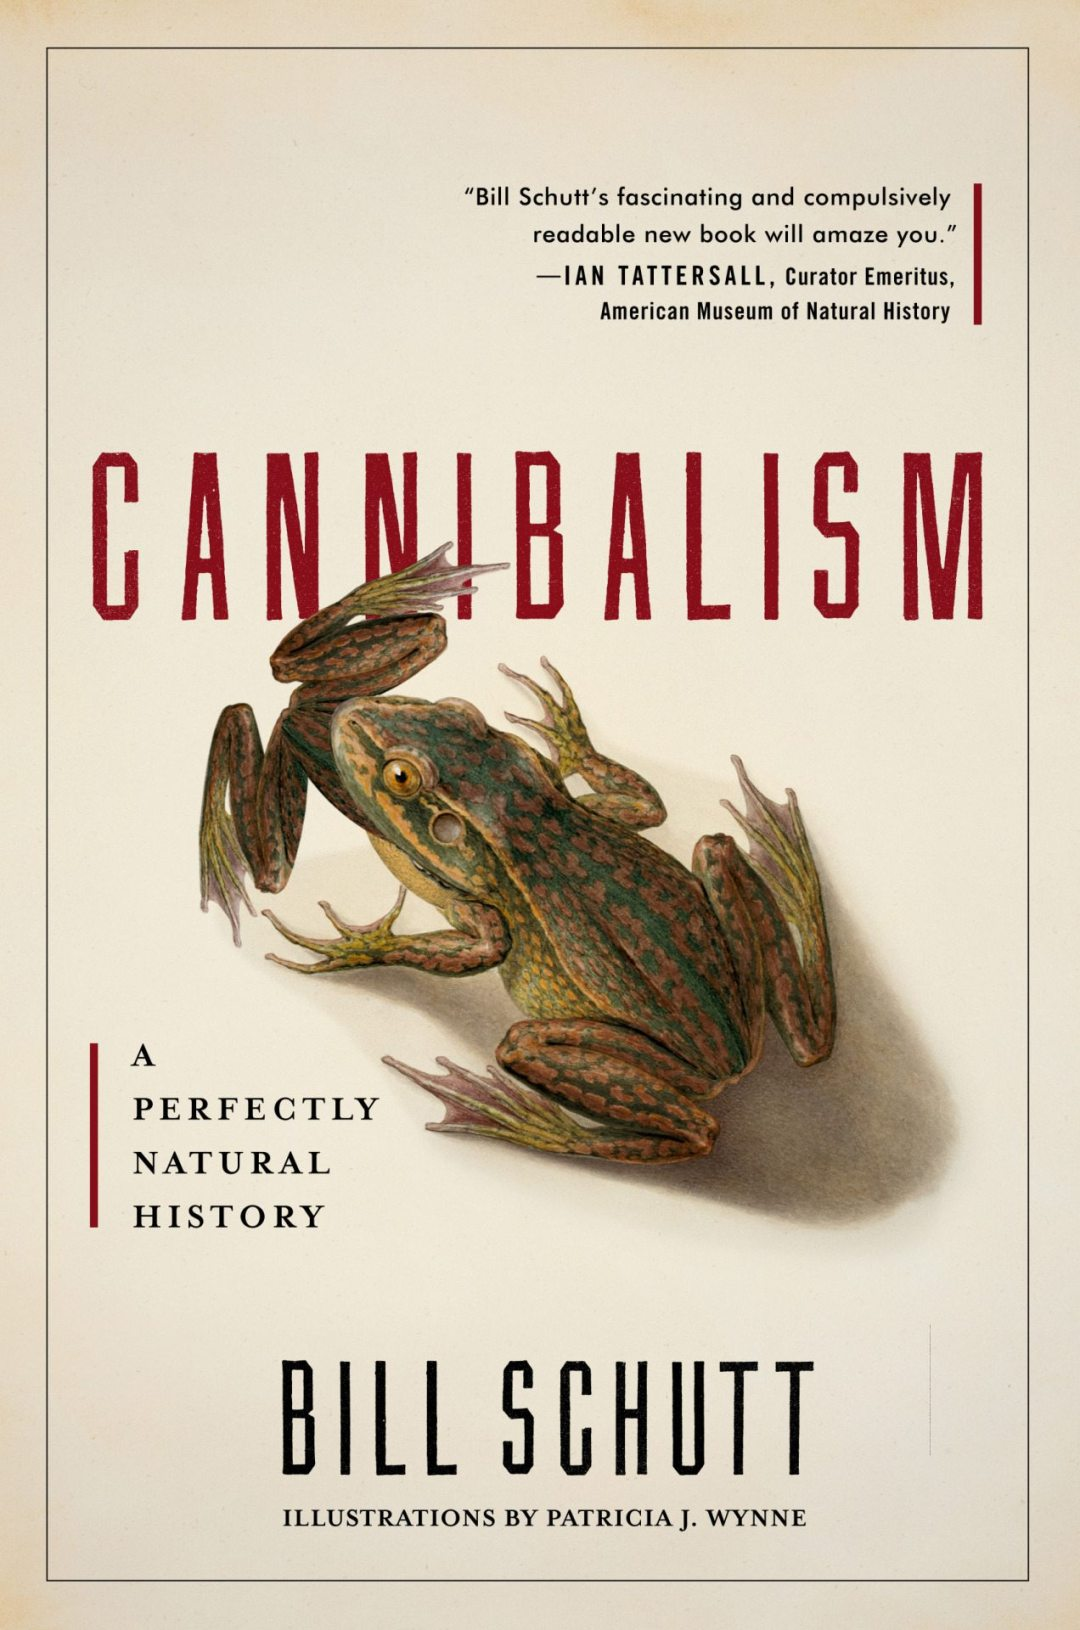 Cannibalism: A Perfectly Natural History – Book Review